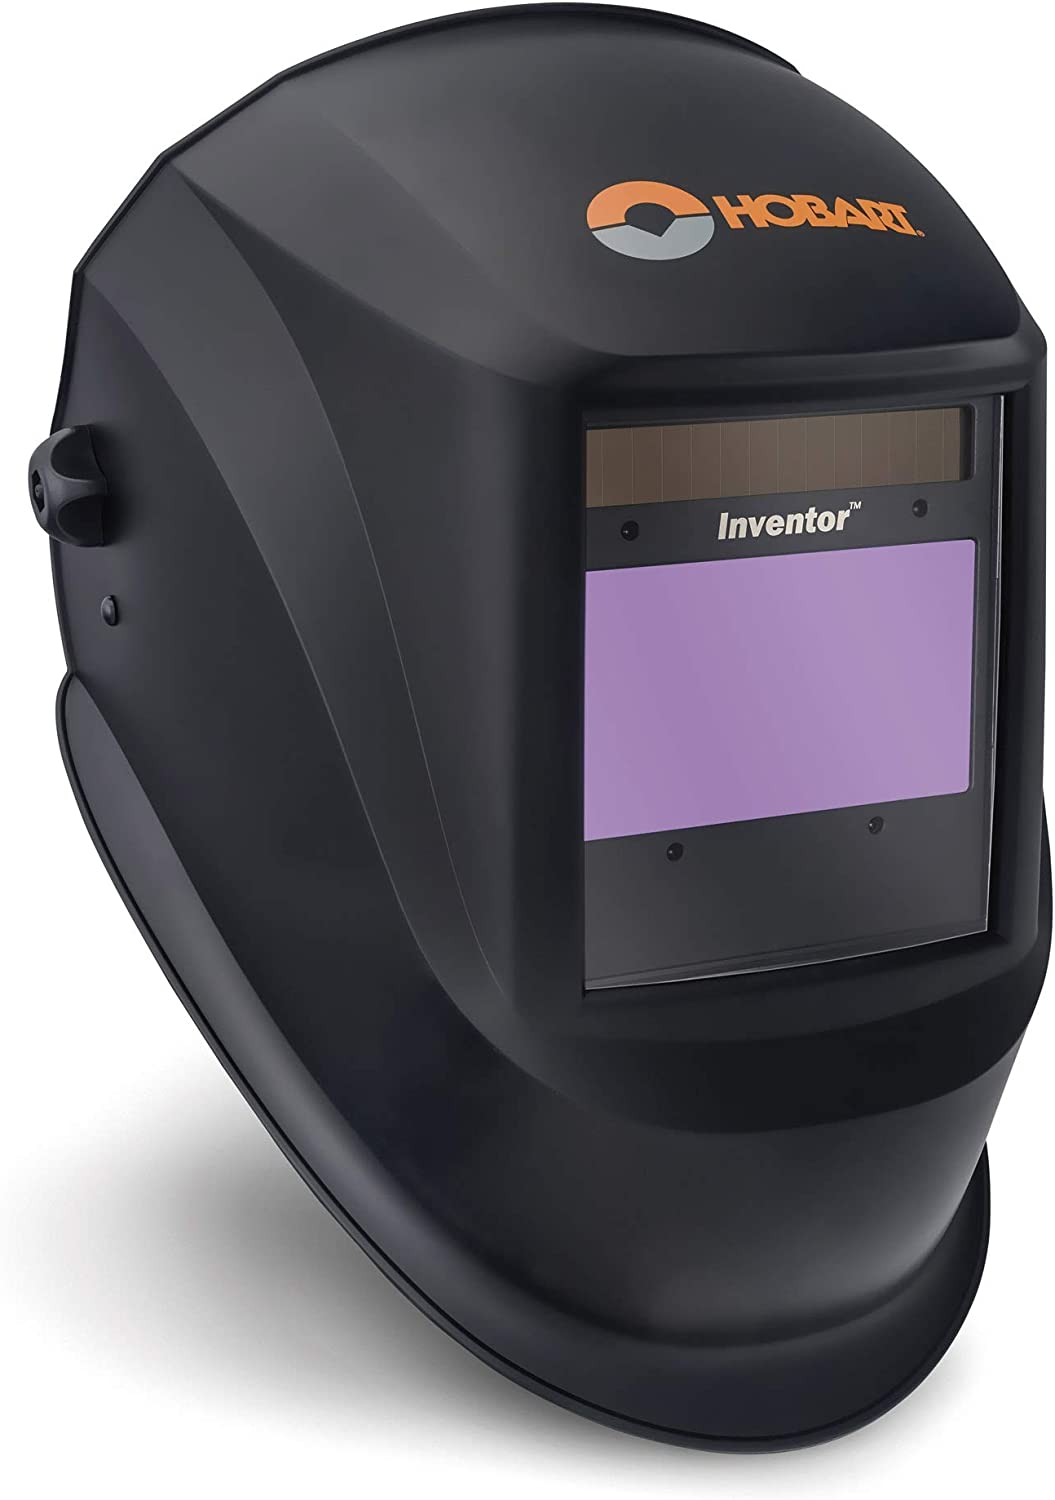 The best heavy-duty welding helmet: Hobart 770890 Auto-Darkening Welding Helmet